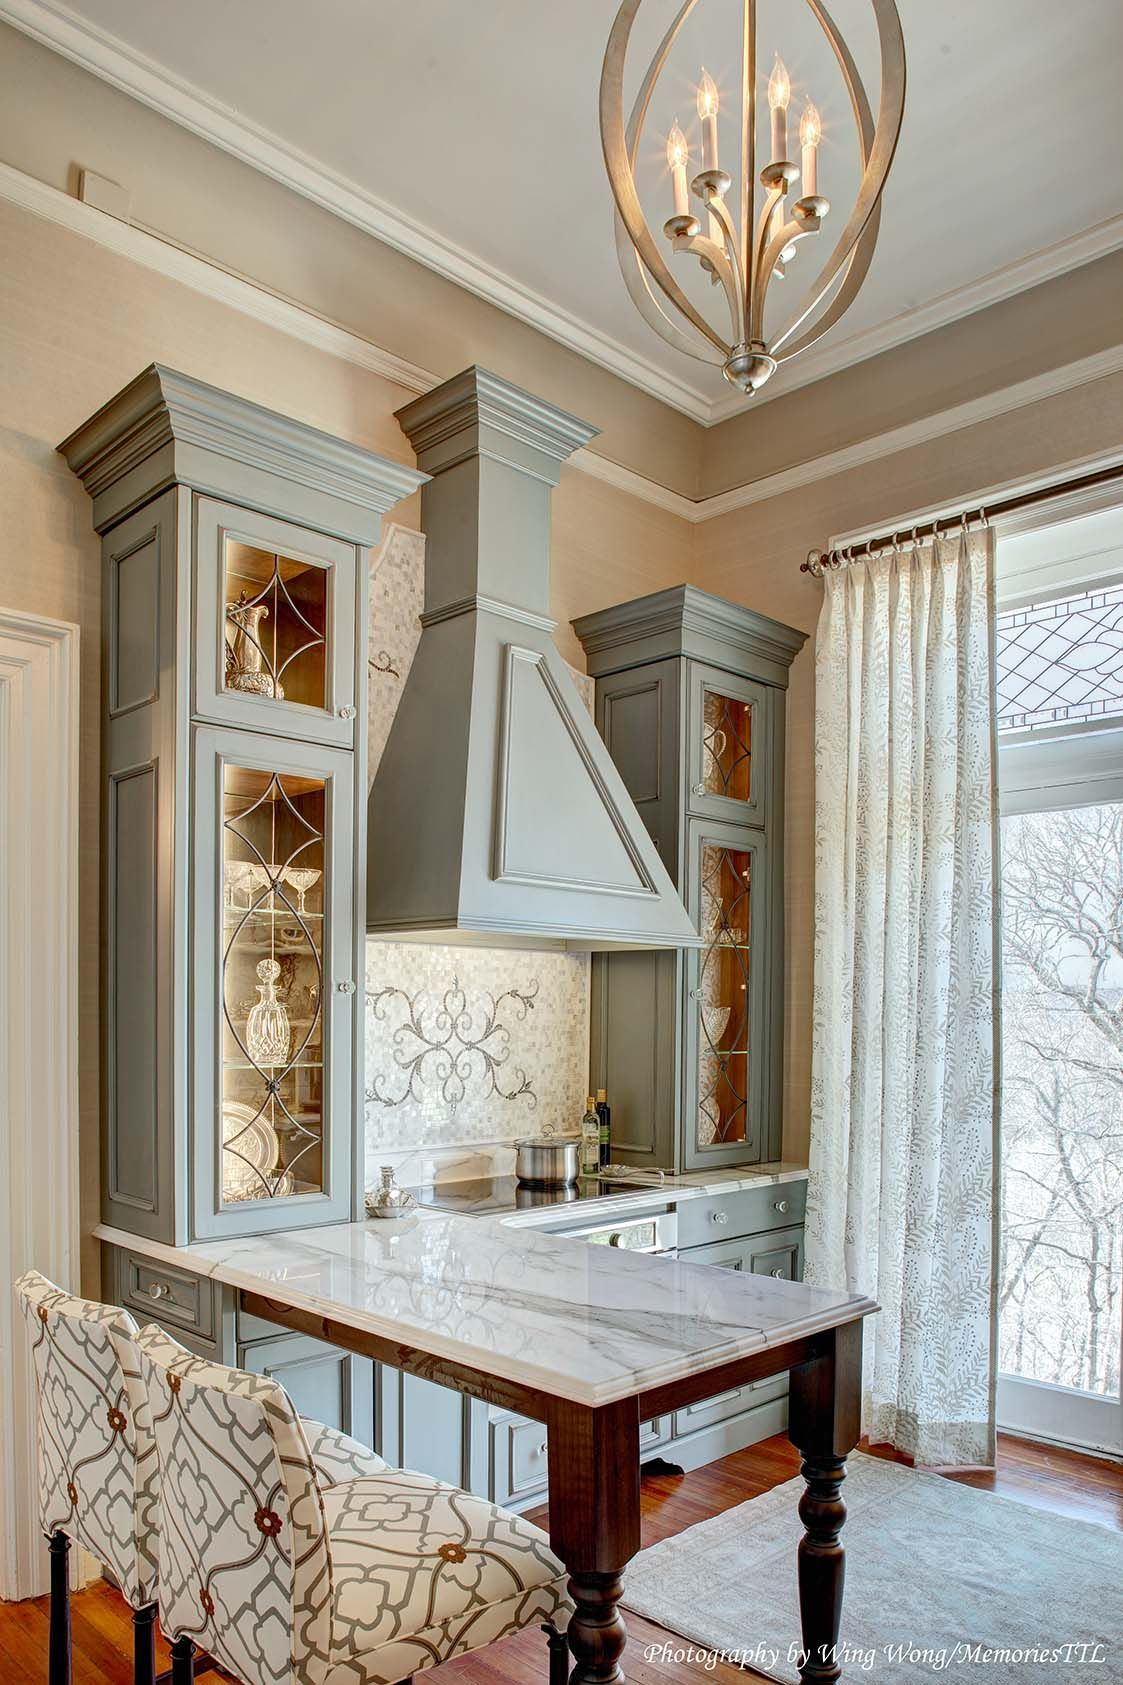 Blairsden Mansion In May Designer Showhouse With Benjamin Moore Paint Photography By Wing Wong MemoriesTTL